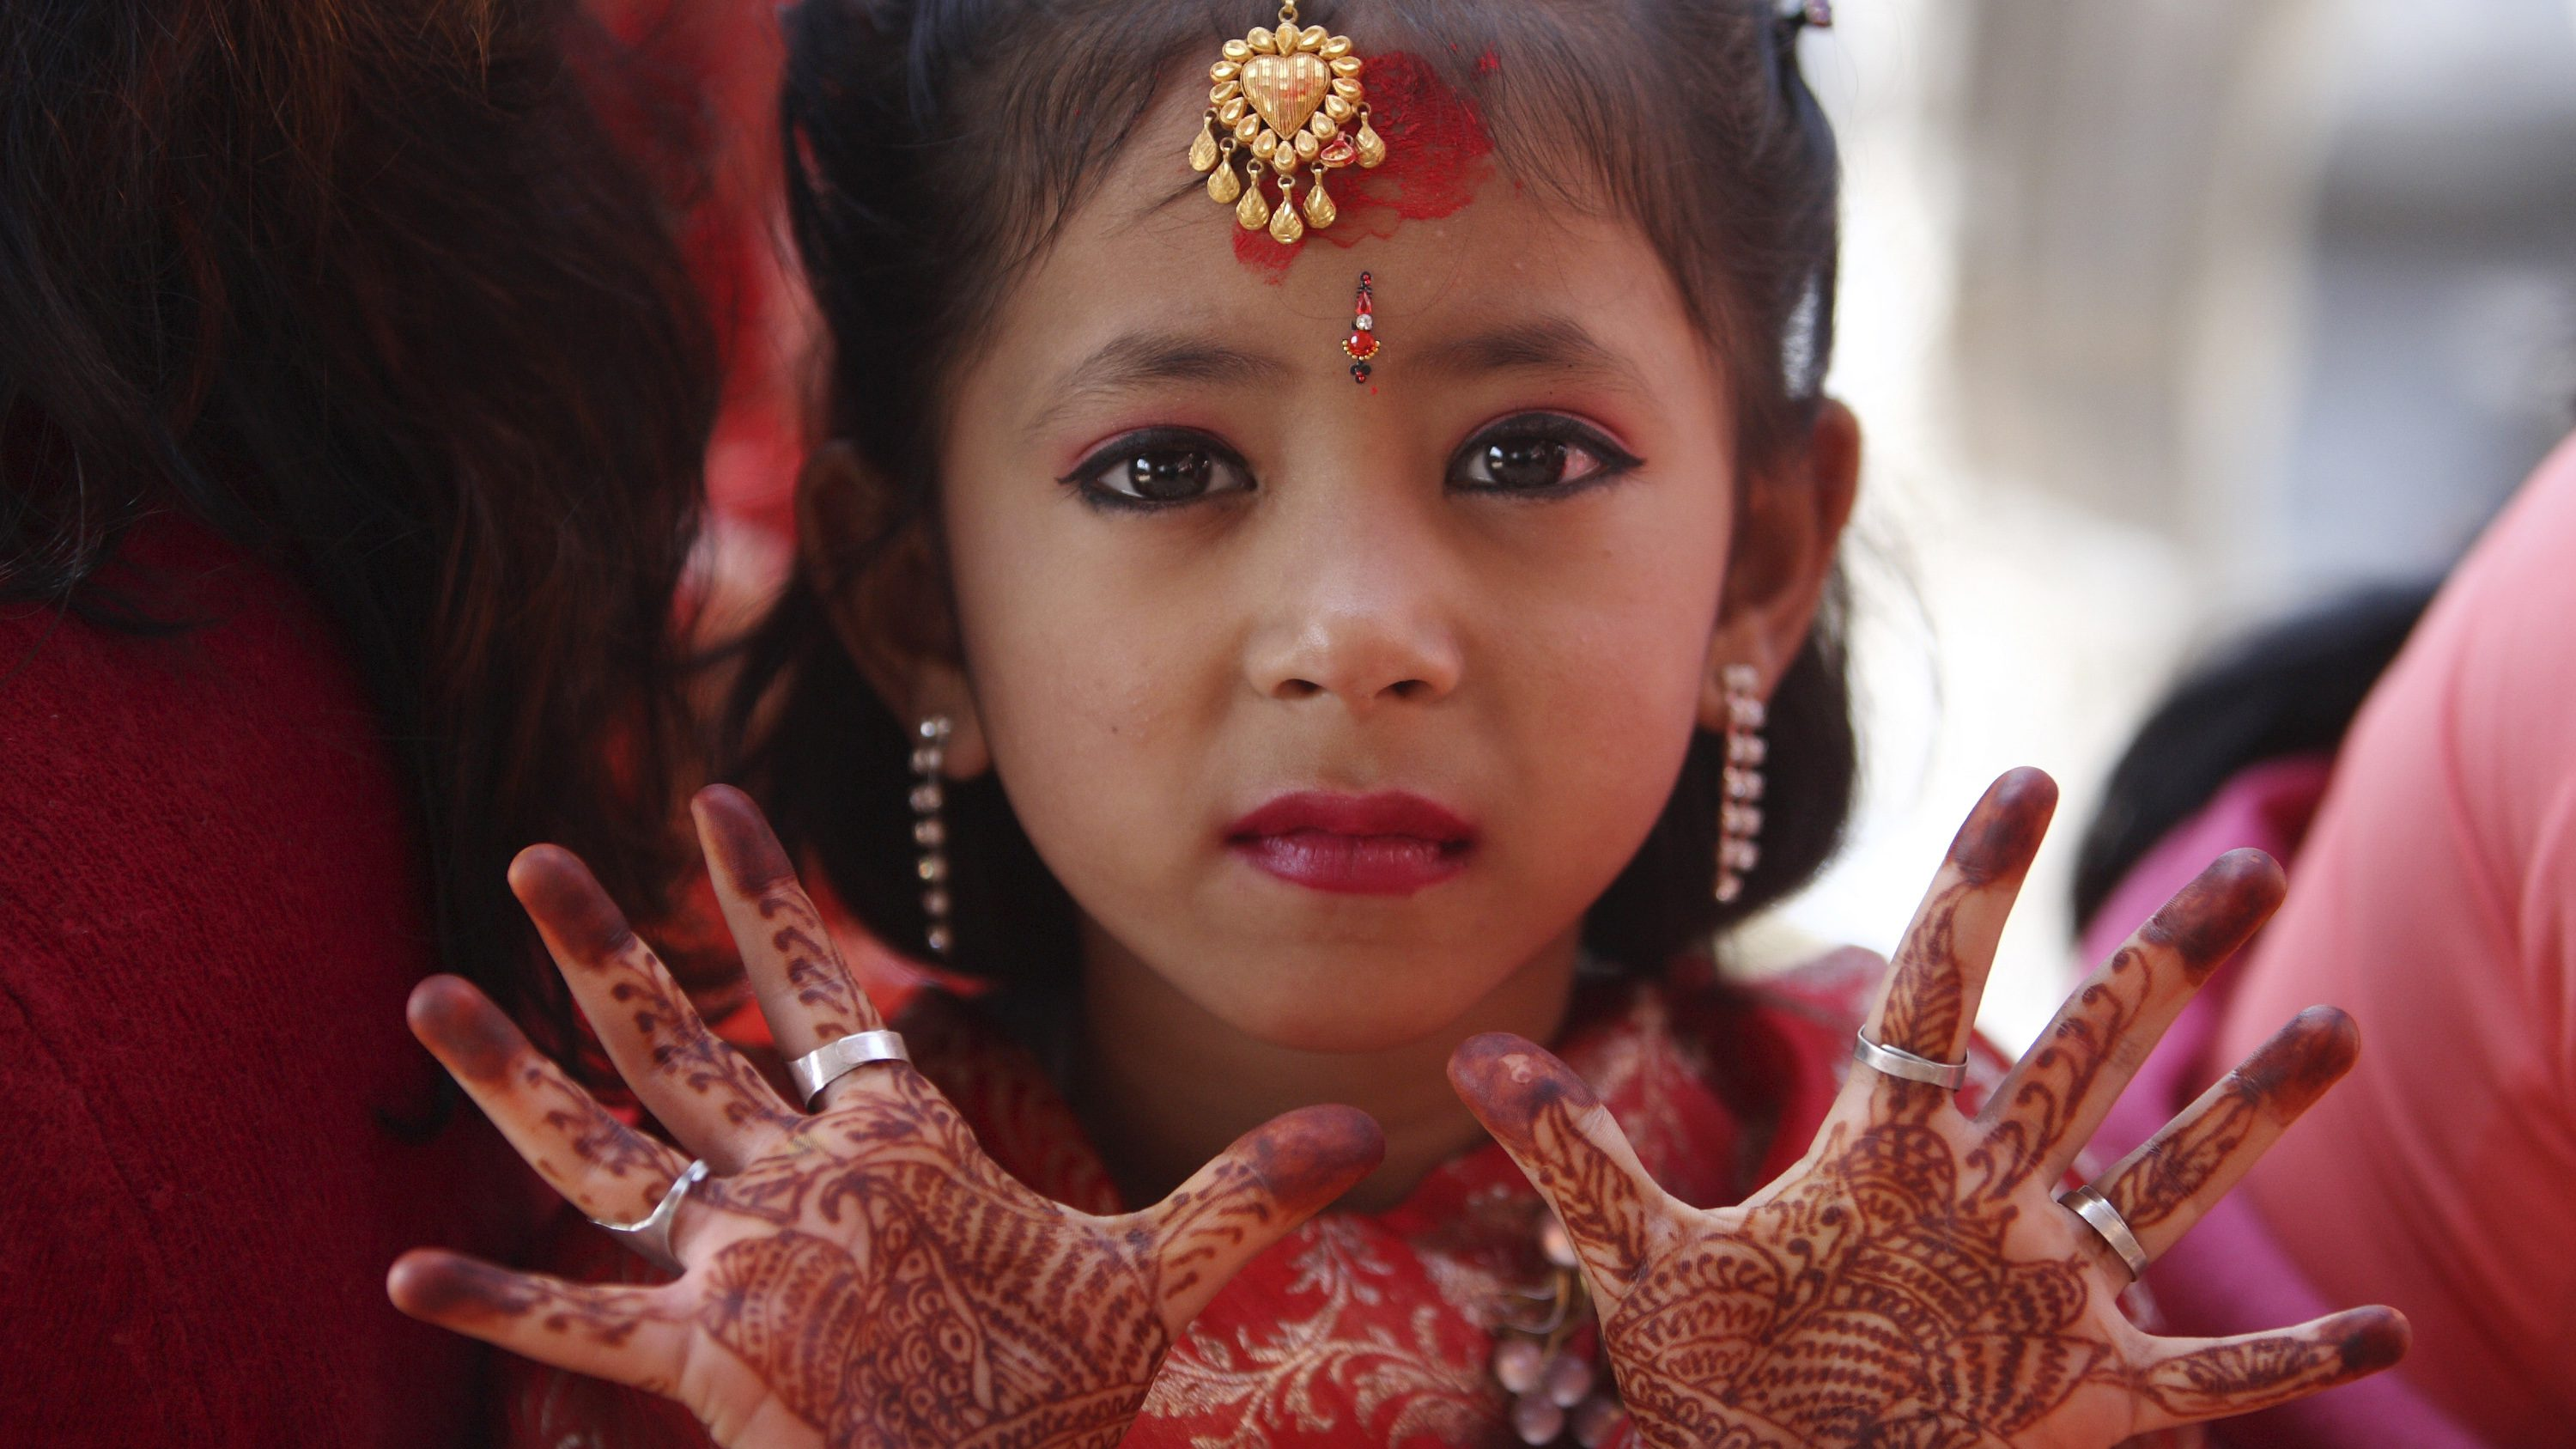 "A Newar girl shows her palms decorated with henna to the camera during an Ihi ceremony in Kathmandu November 20, 2009. Girls aged odd years before puberty are married to Bel, the fruit of an wood-apple tree in the ceremony. Ihi is a two-day ceremony which begins with purification rituals and ends with ""Kanyadan"" (giving away the virgin) of the girl by her father. In this way, a Newar girl is married thrice in her life first with a wood apple tree fruit. A second time with the sun and finally with a human later in life. REUTERS/Gopal Chitrakar (NEPAL SOCIETY IMAGES OF THE DAY) - RTXQY6K"